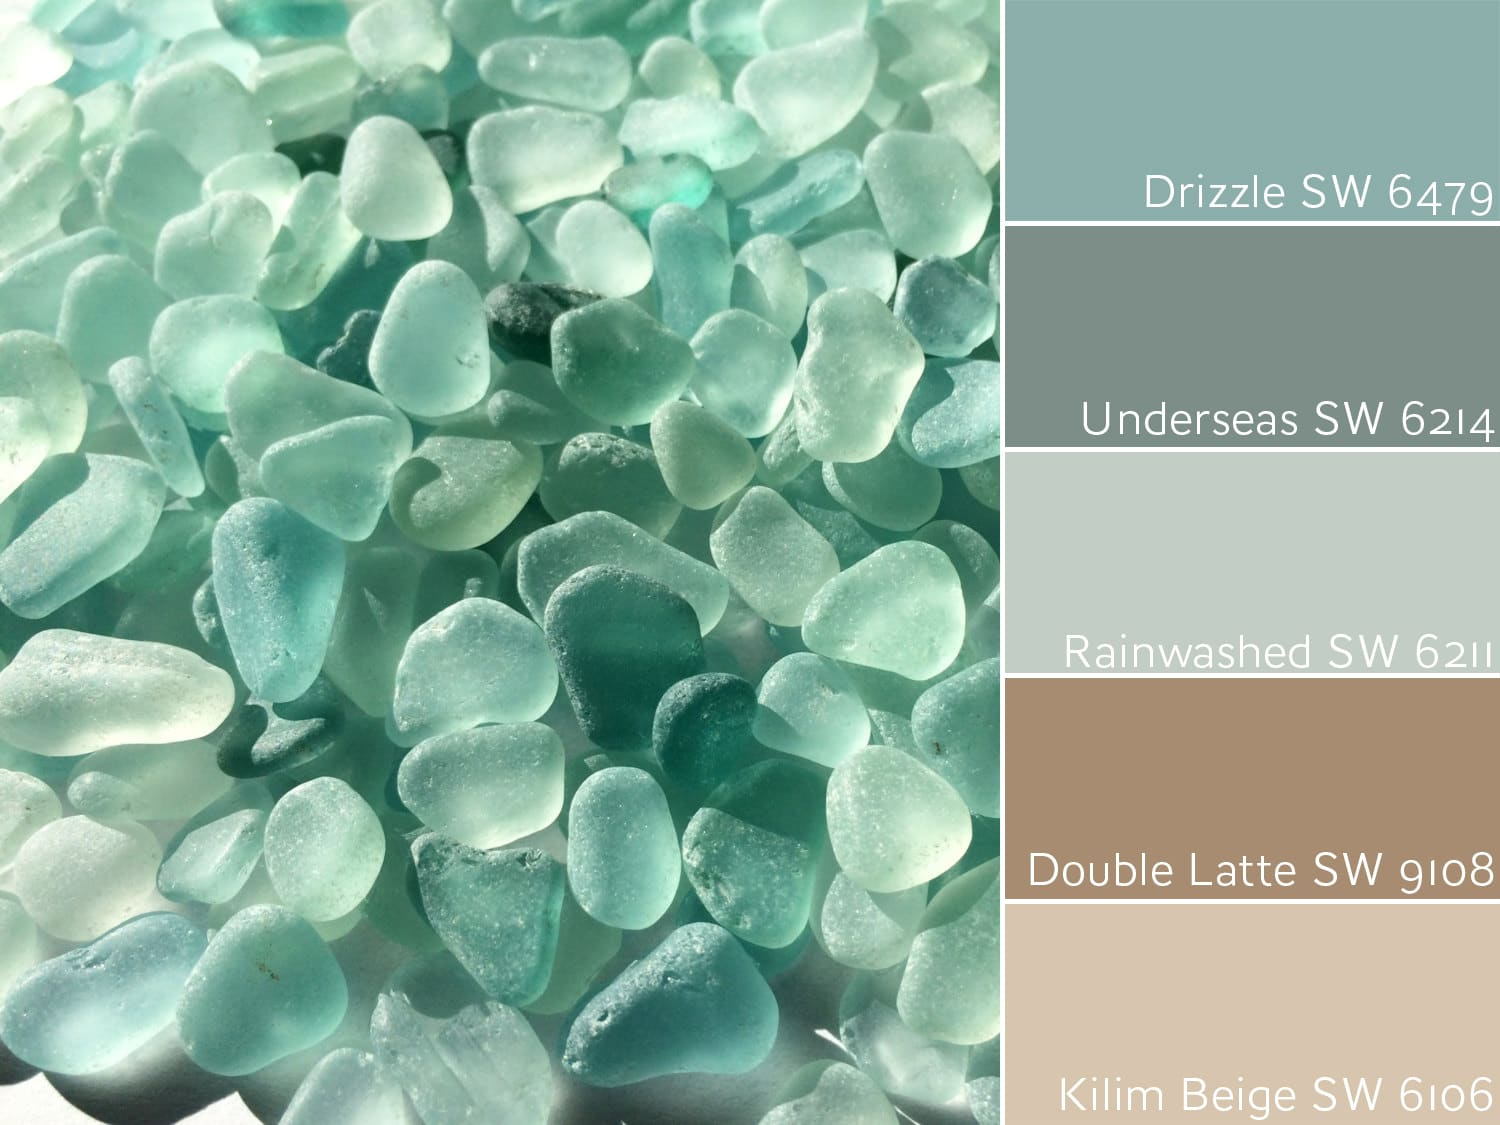 Drizzle SW 6479 Sea Glass Inspiration